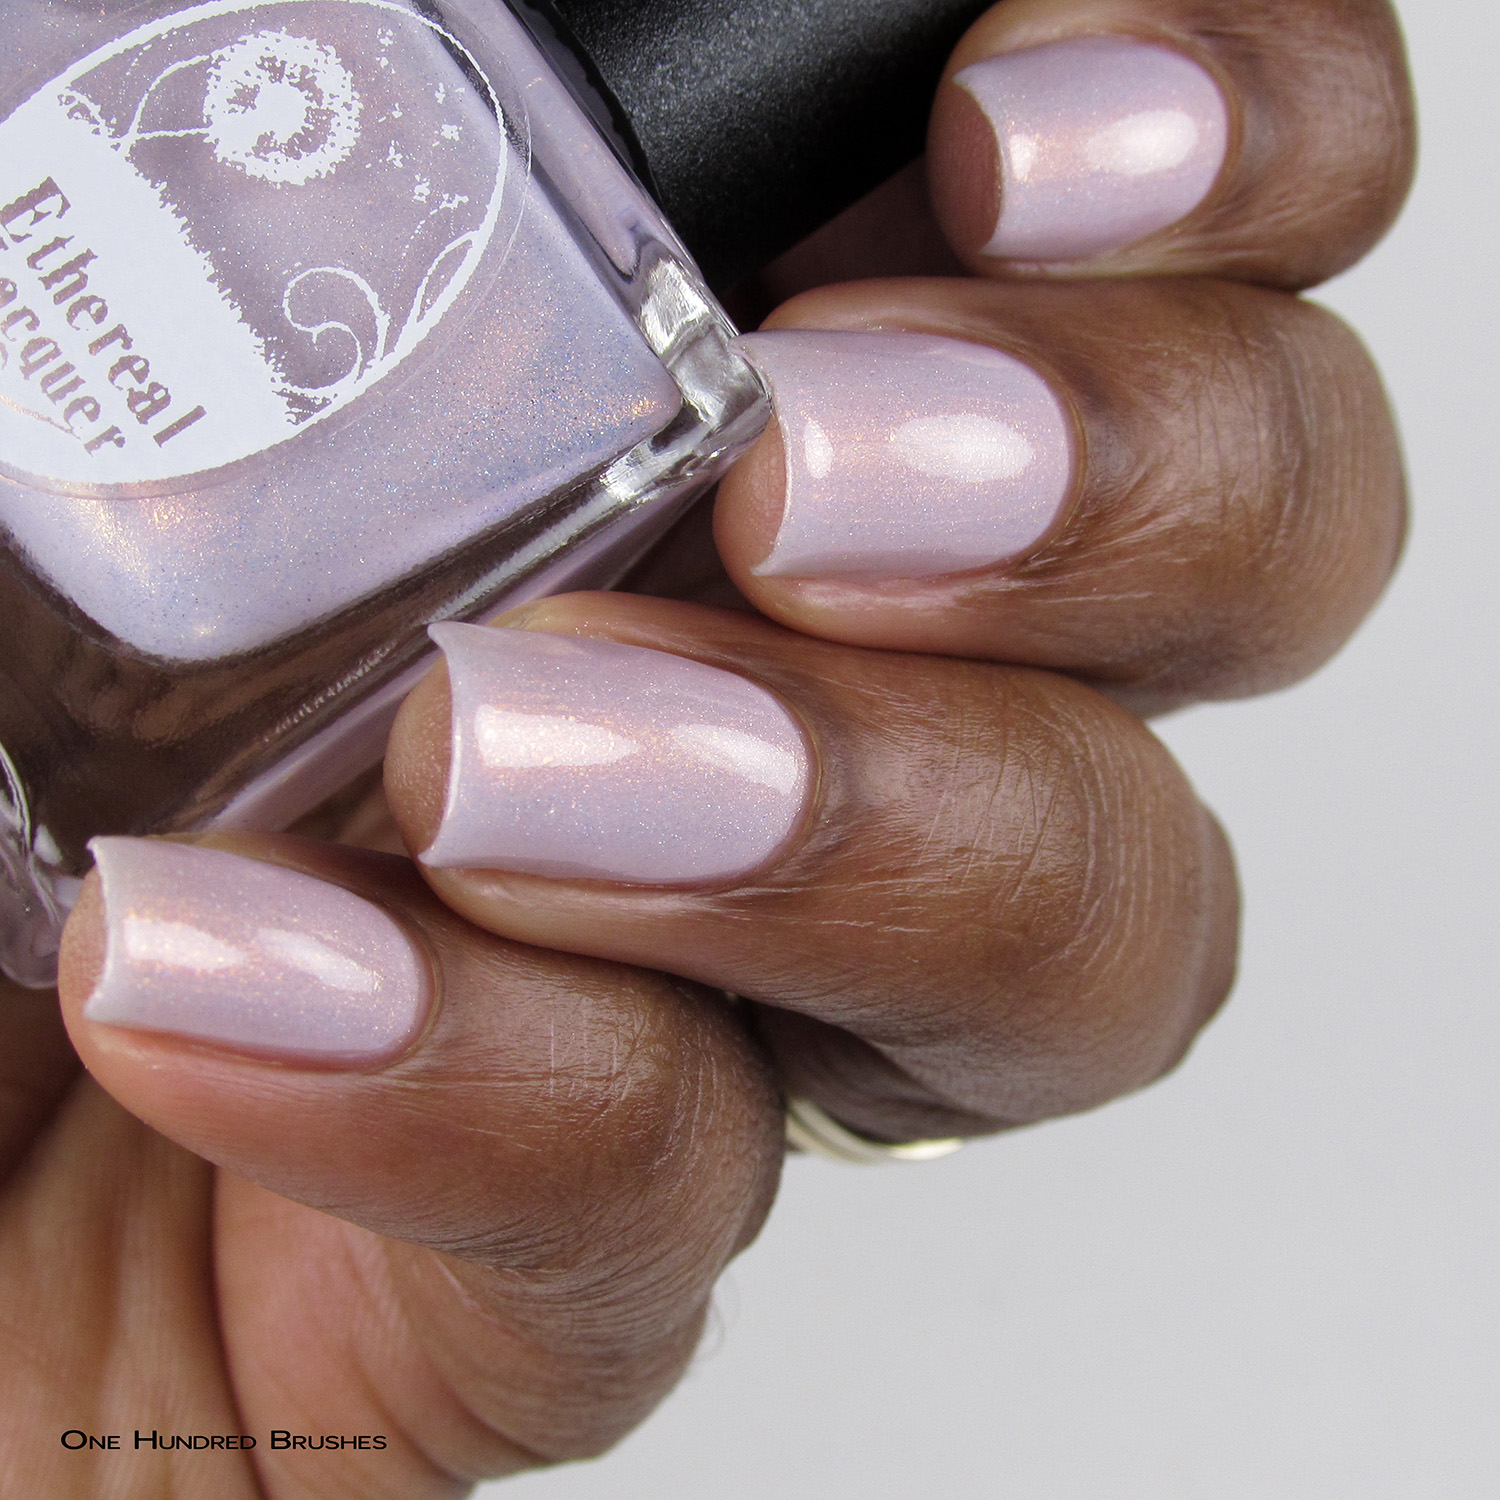 Little Oysters - Ethereal Lacquer - HHC Aug 2018